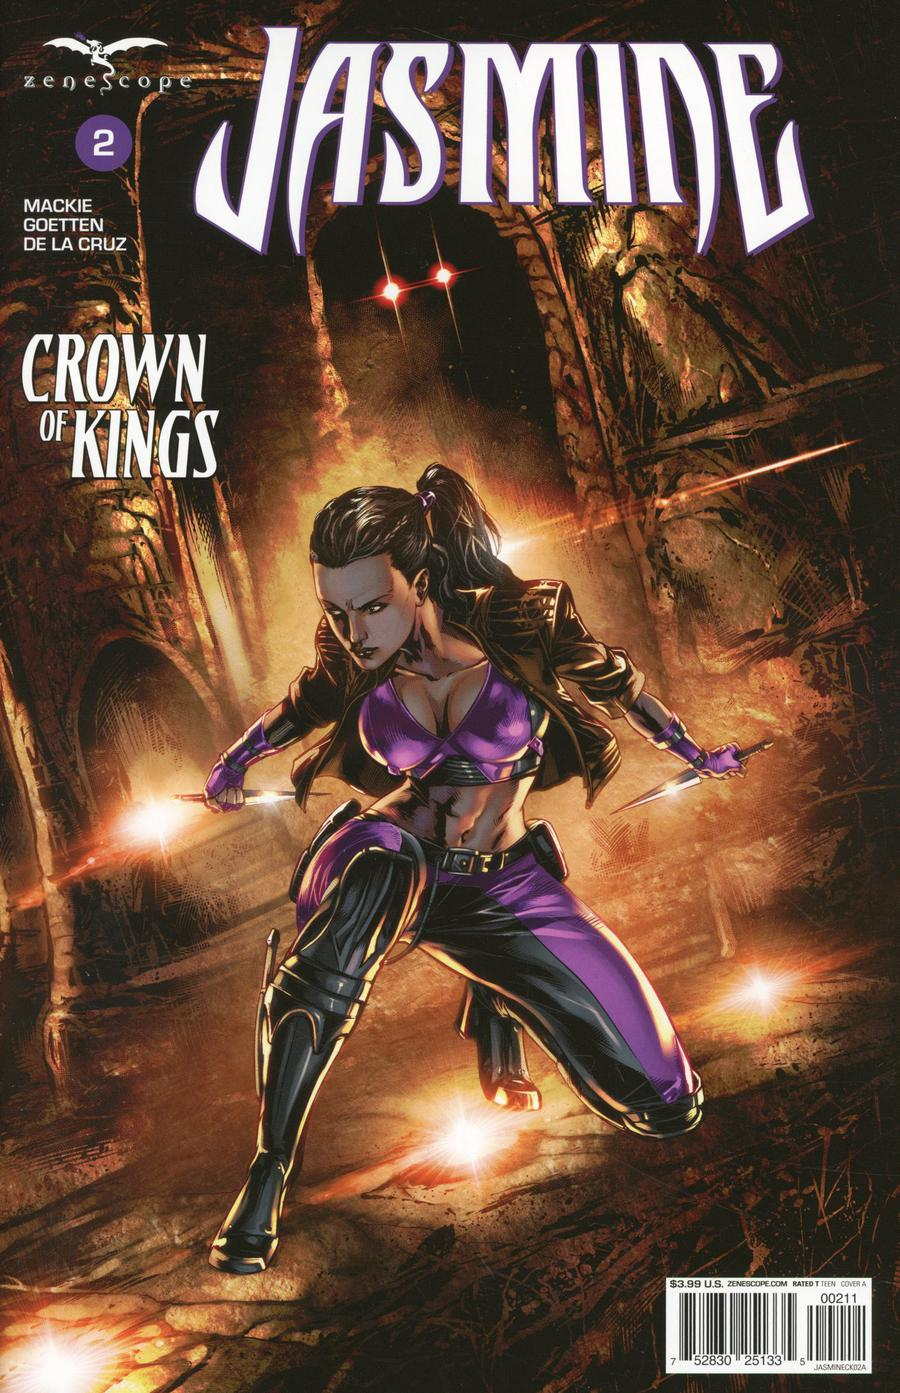 Grimm Fairy Tales Presents Jasmine Crown Of Kings #2 Cover A Caanan White